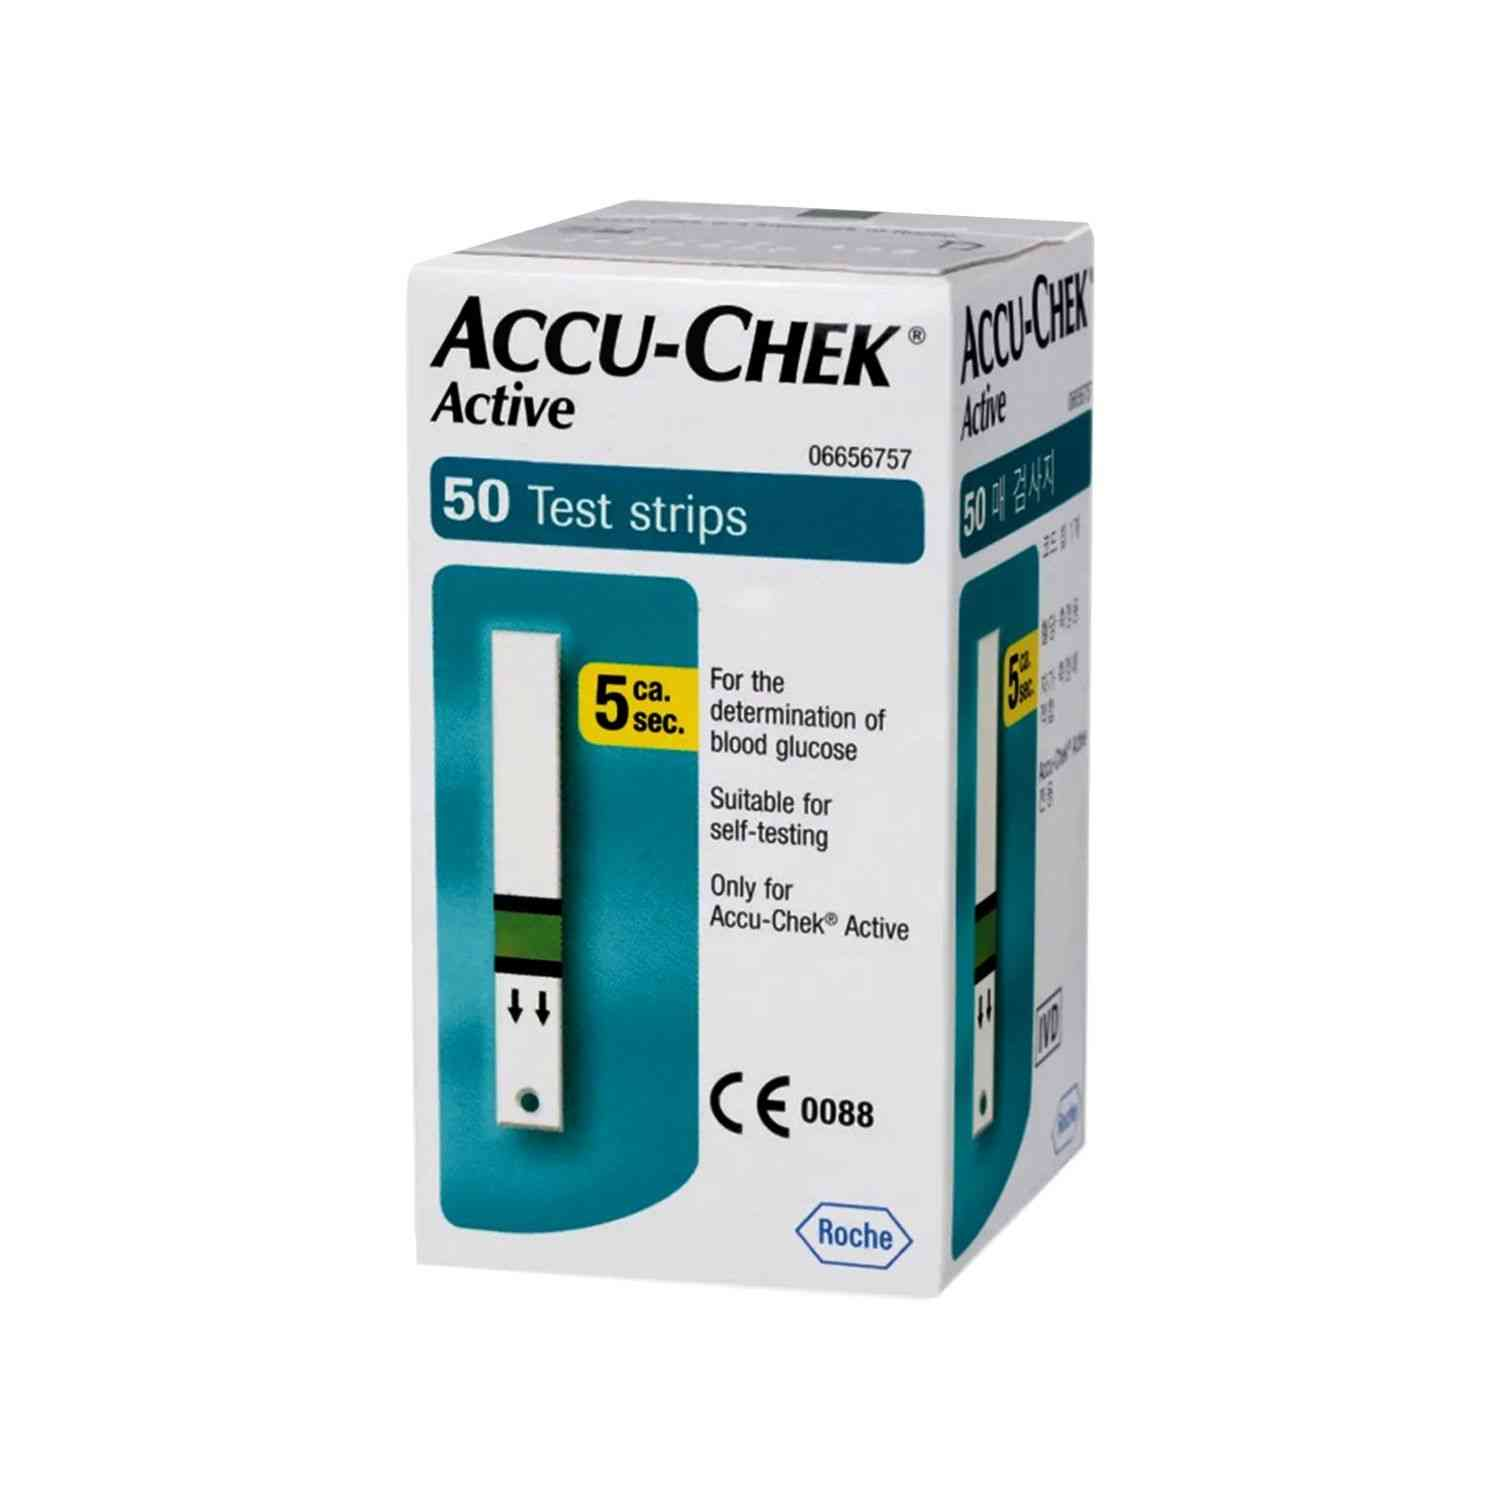 Accu-chek Active Glucometer Test Strips Box Of 50